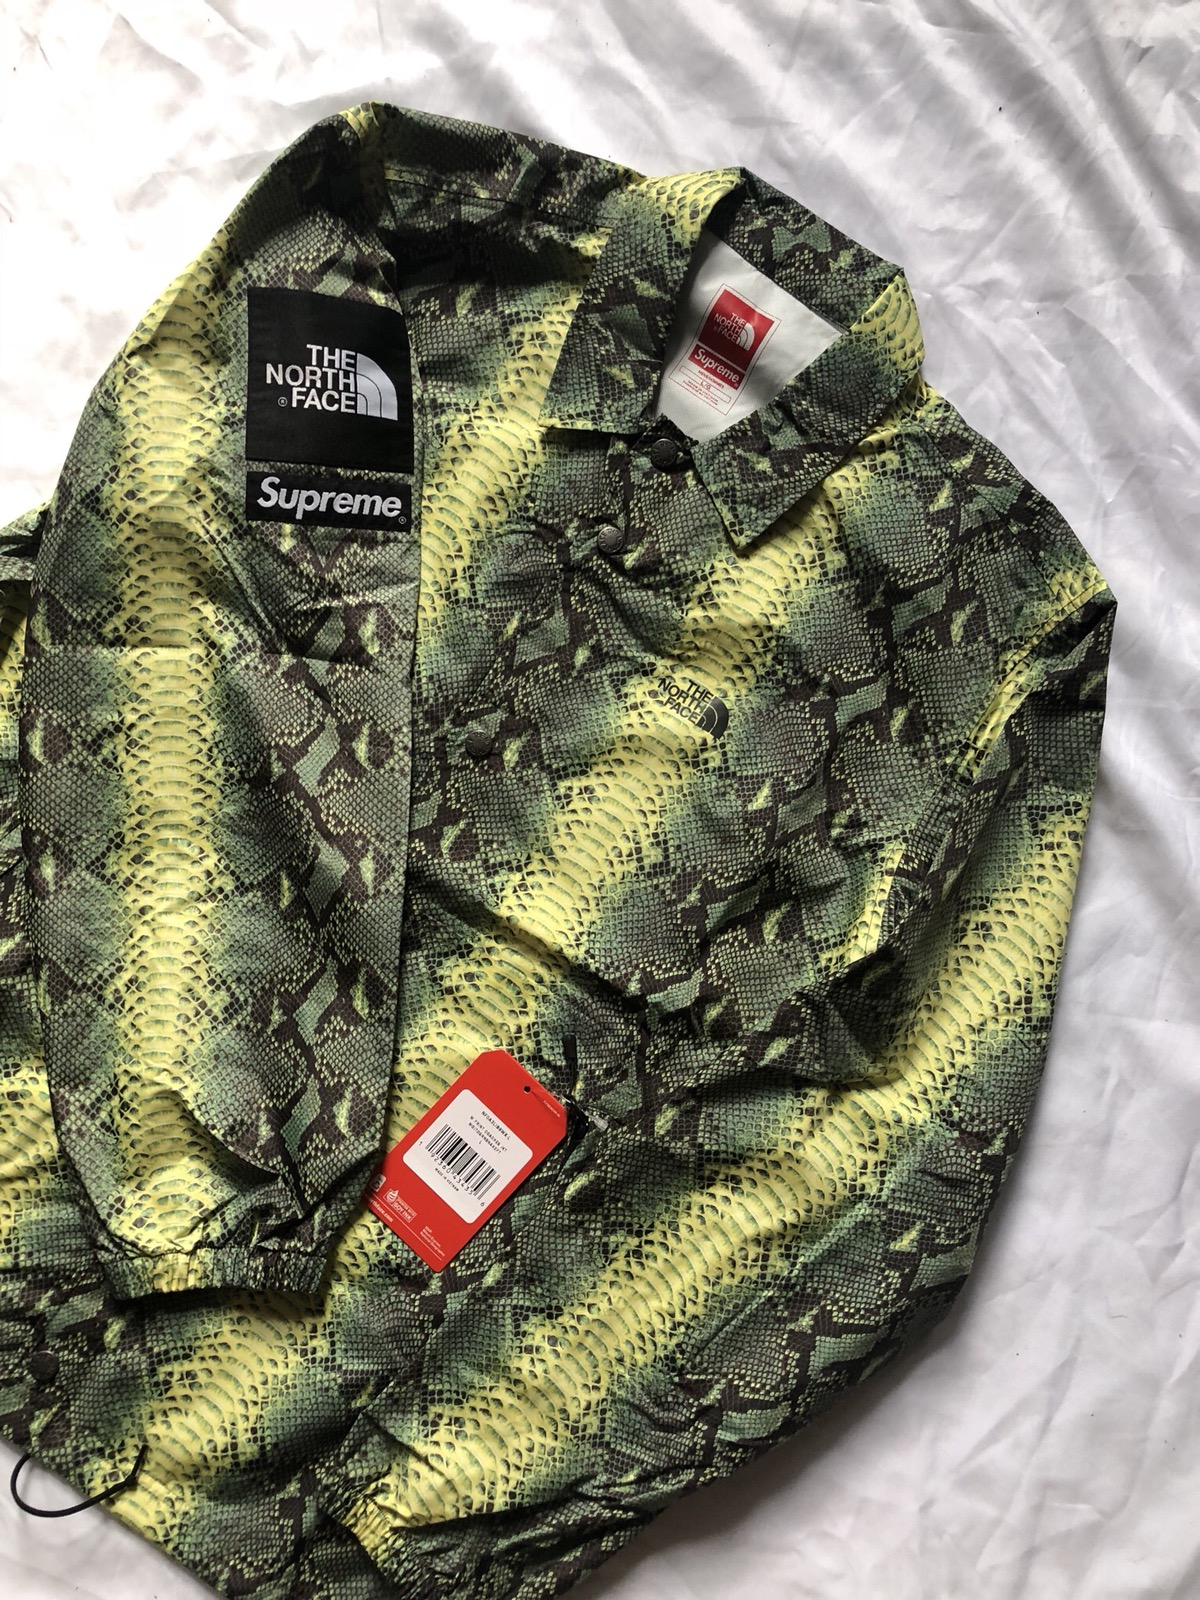 f4b7419304 Supreme Supreme TNF Snakeskin Taped Seam Coaches Jacket Size Large Size l -  Light Jackets for Sale - Grailed